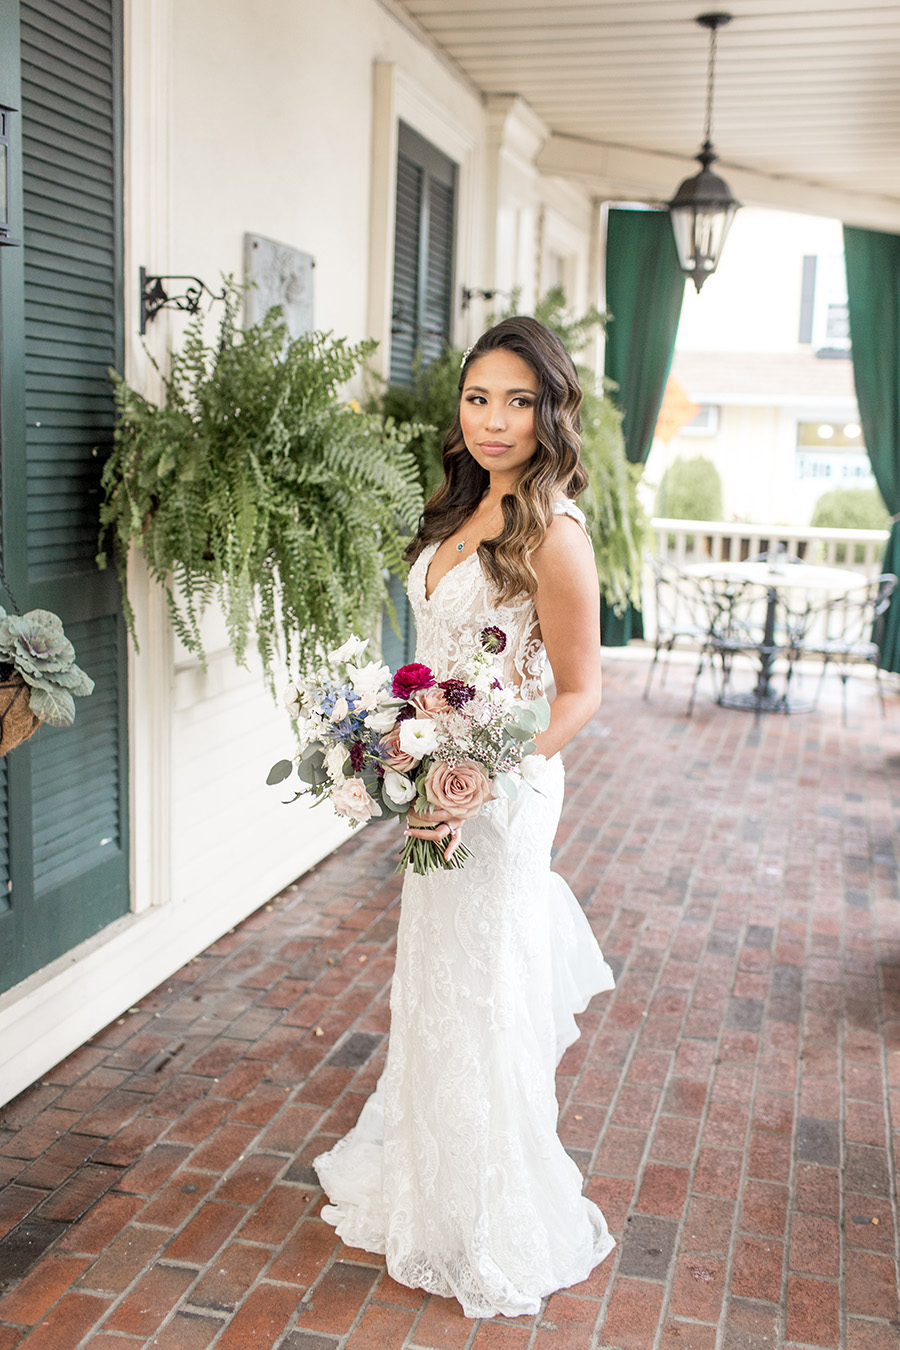 Bride in lace wedding gown with hollywood waves